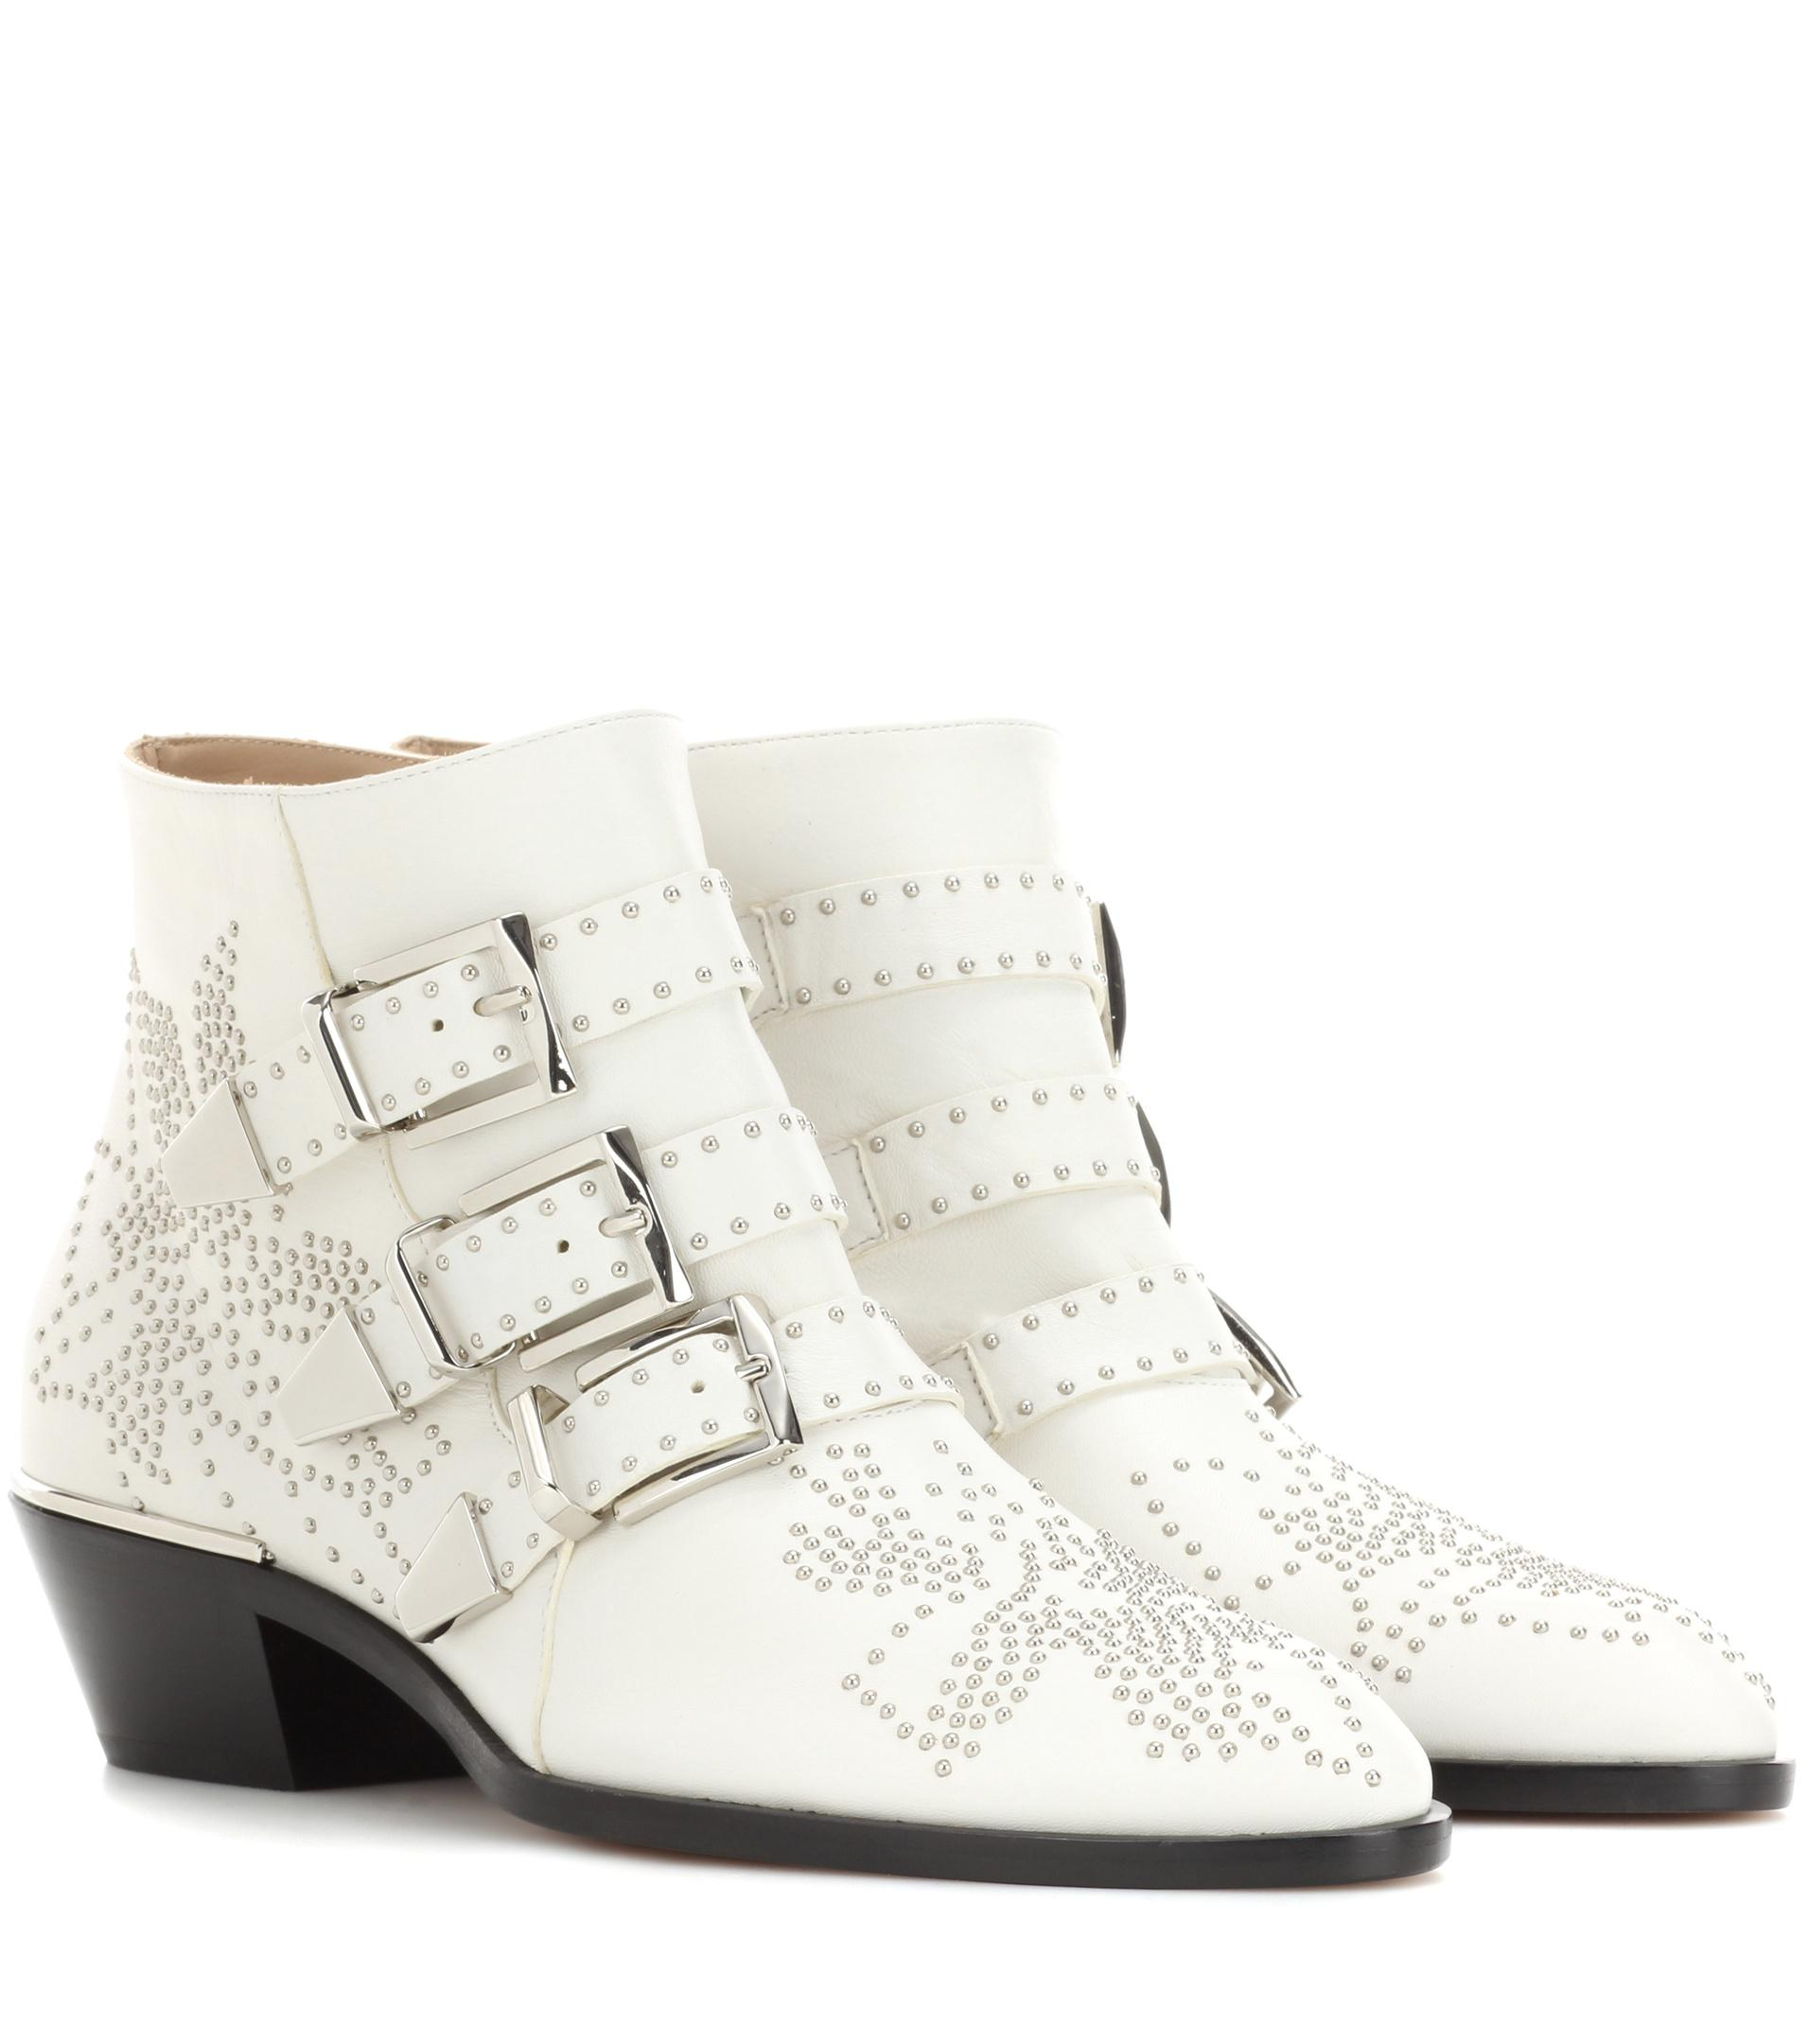 e09967597910 Gallery. Previously sold at  Mytheresa · Women s Studded Boots Women s  Studs Women s Chloe Susanna ...